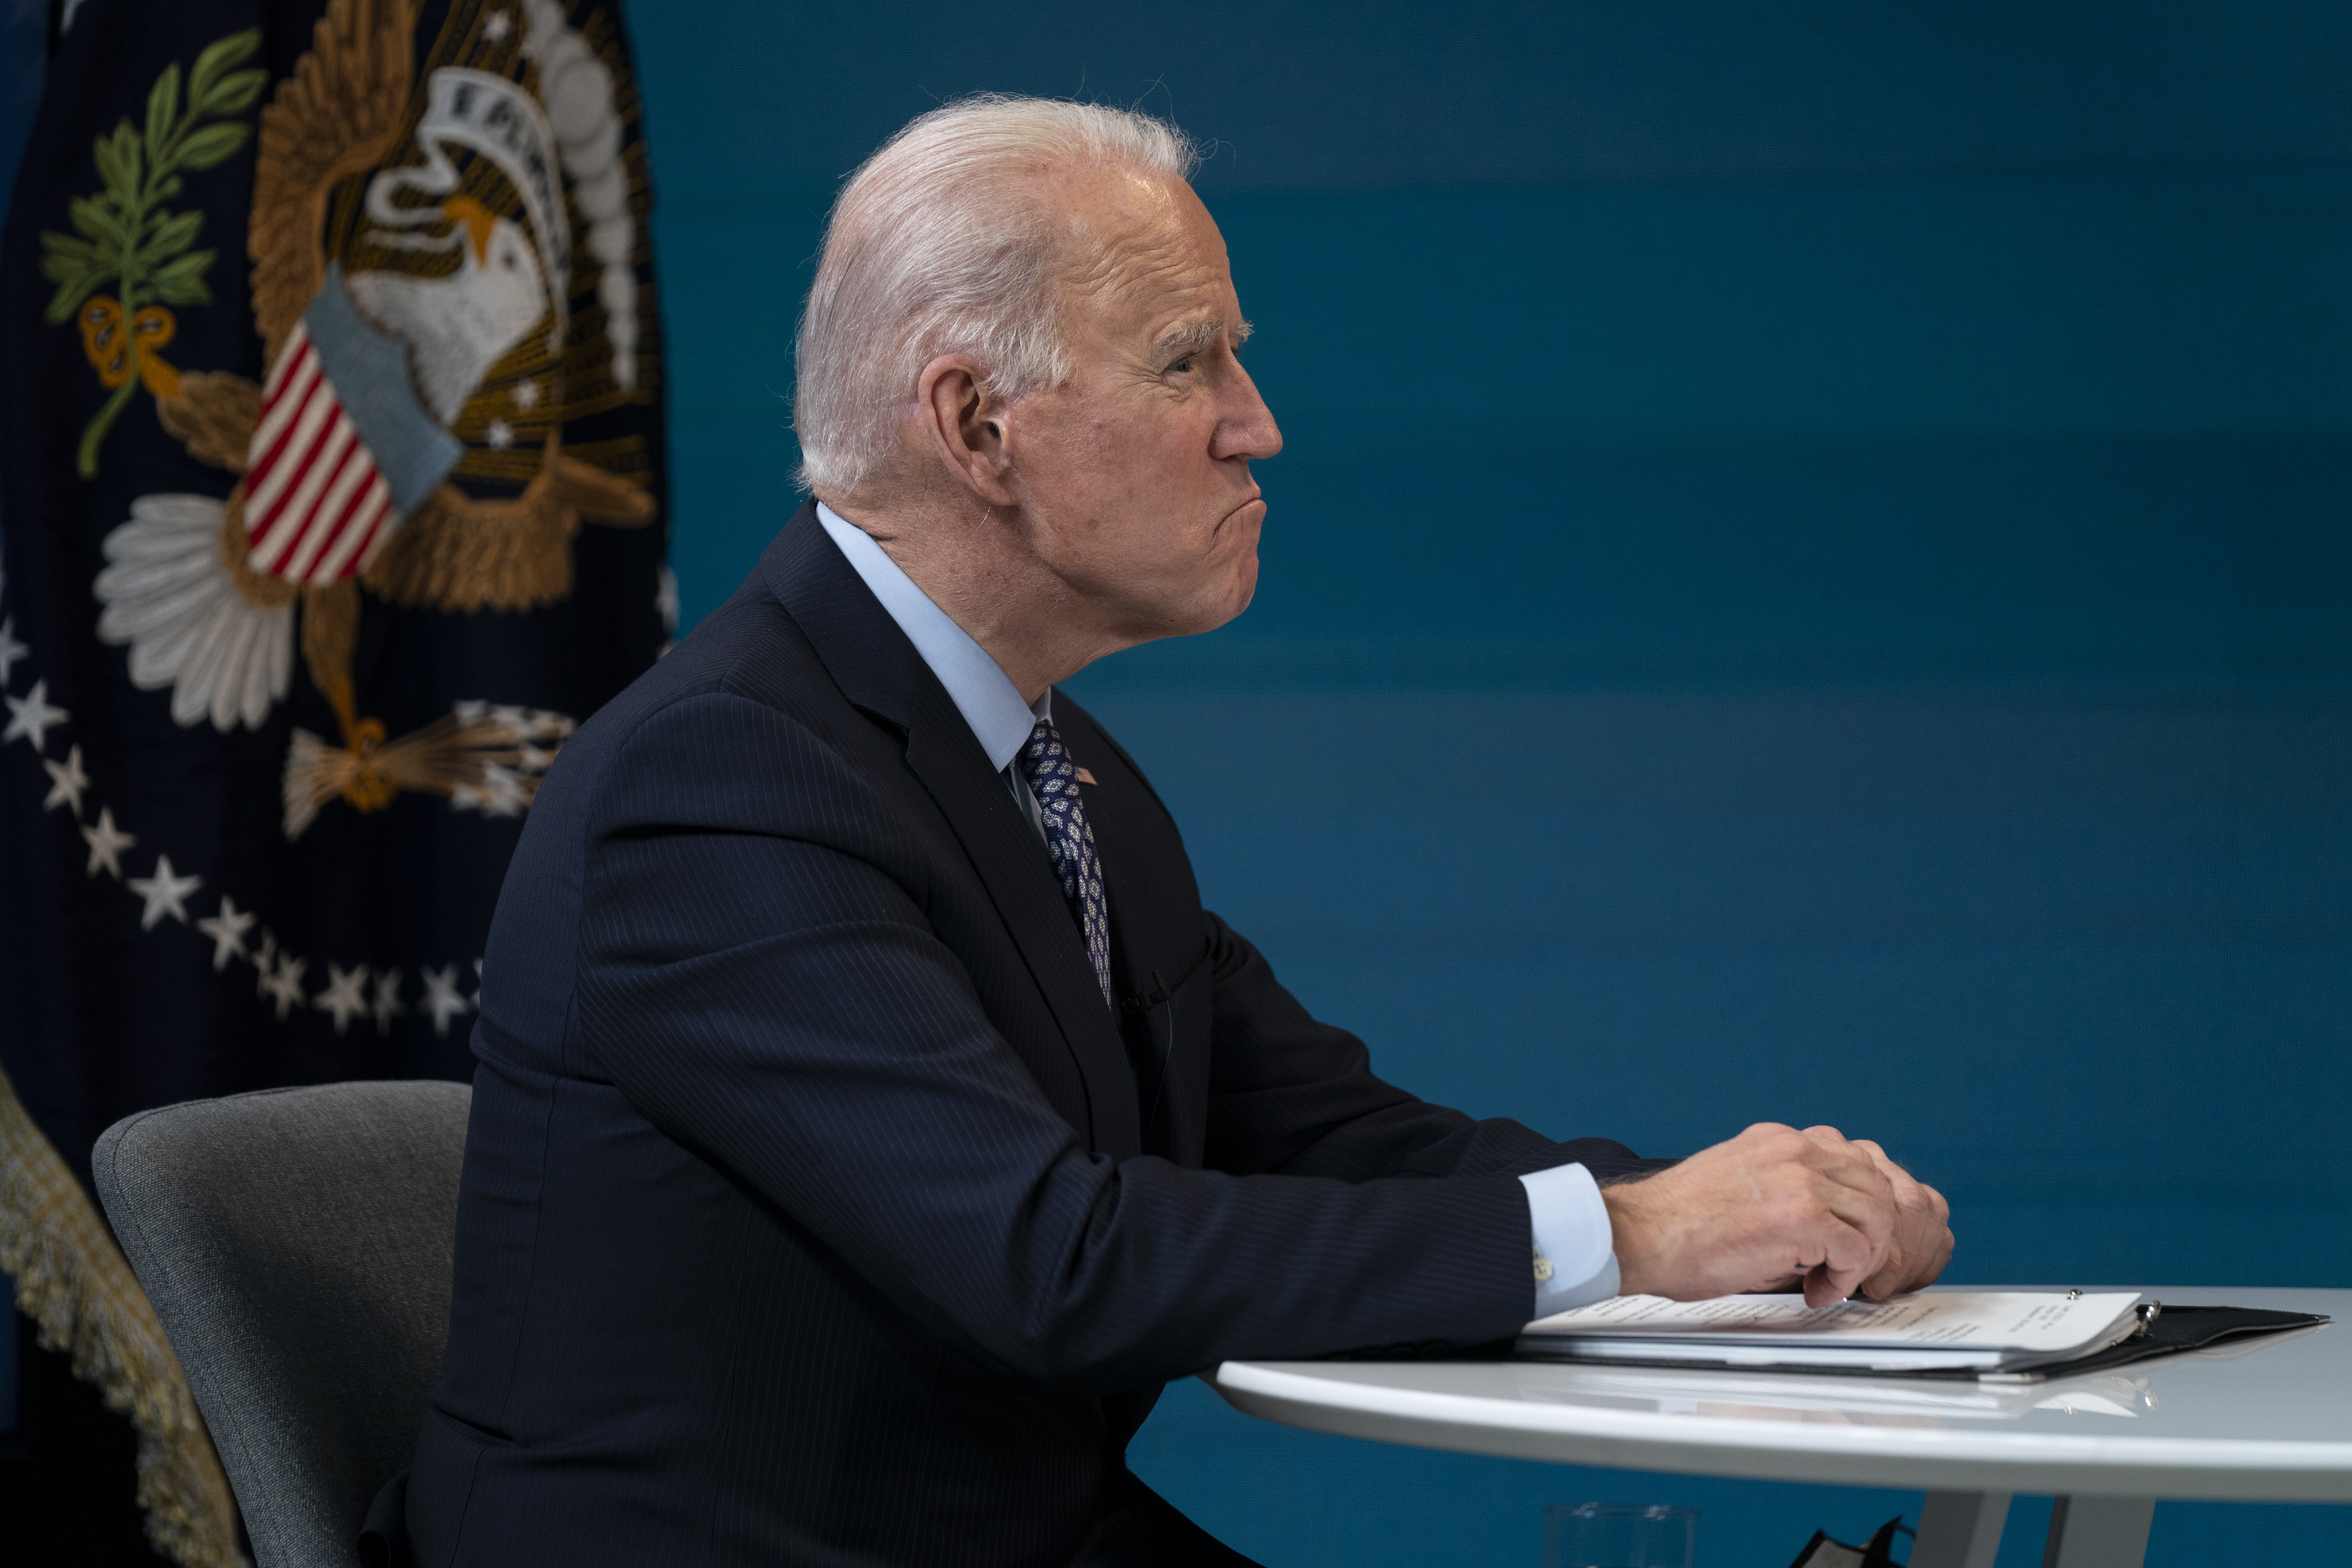 President Joe Biden prepares to speak to a virtual meeting of the National Governors Association, in the South Court Auditorium on the White House campus, Thursday, Feb. 25, 2021, in Washington.